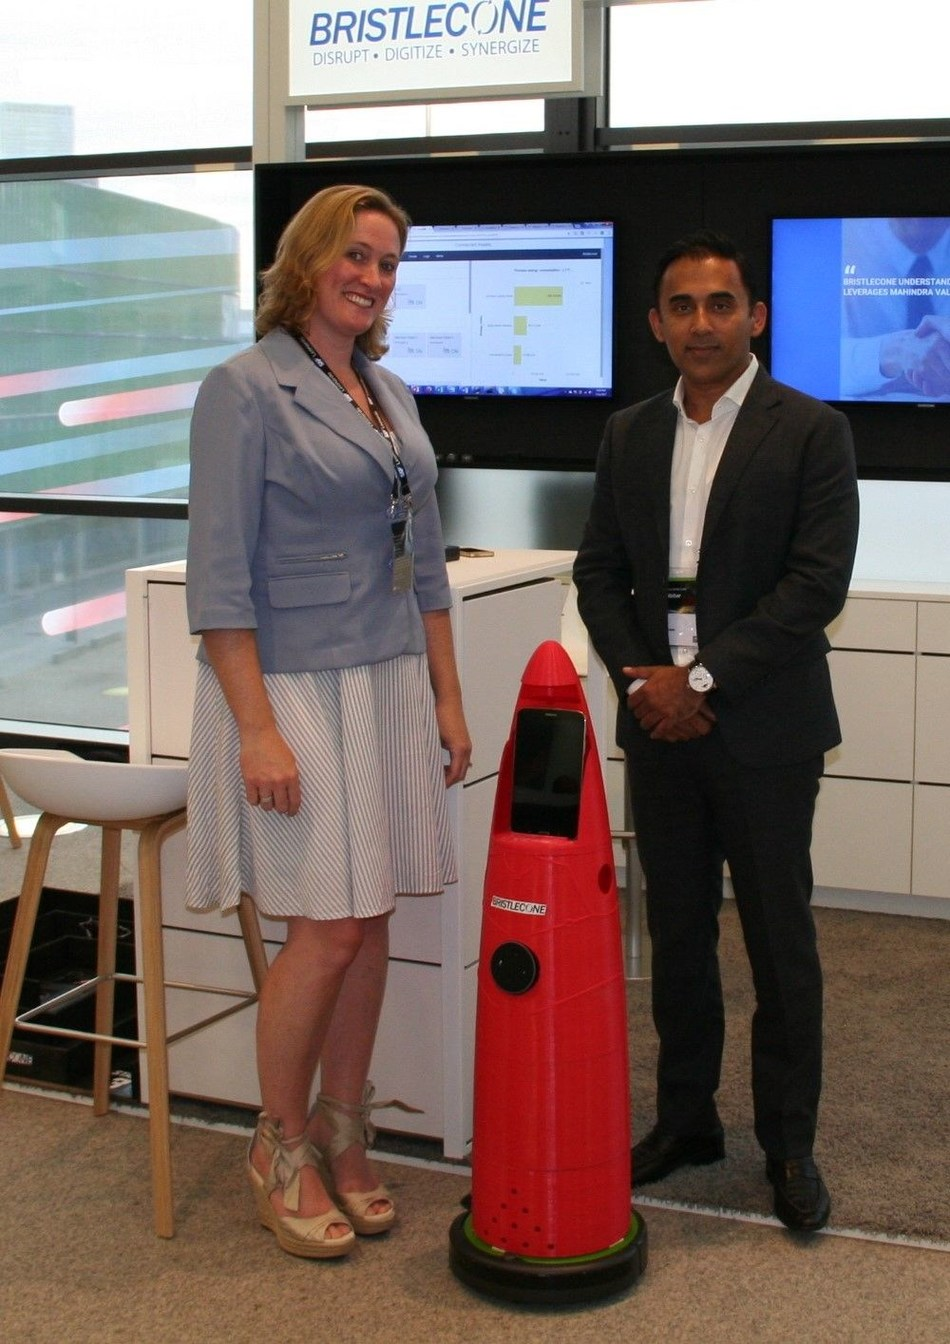 (From Right to left) Irfan Khan, President and CEO, Bristlecone, with HARI and Rebecca Nerad, Head of Global Marketing and Alliances (PRNewsfoto/Bristlecone Inc.)